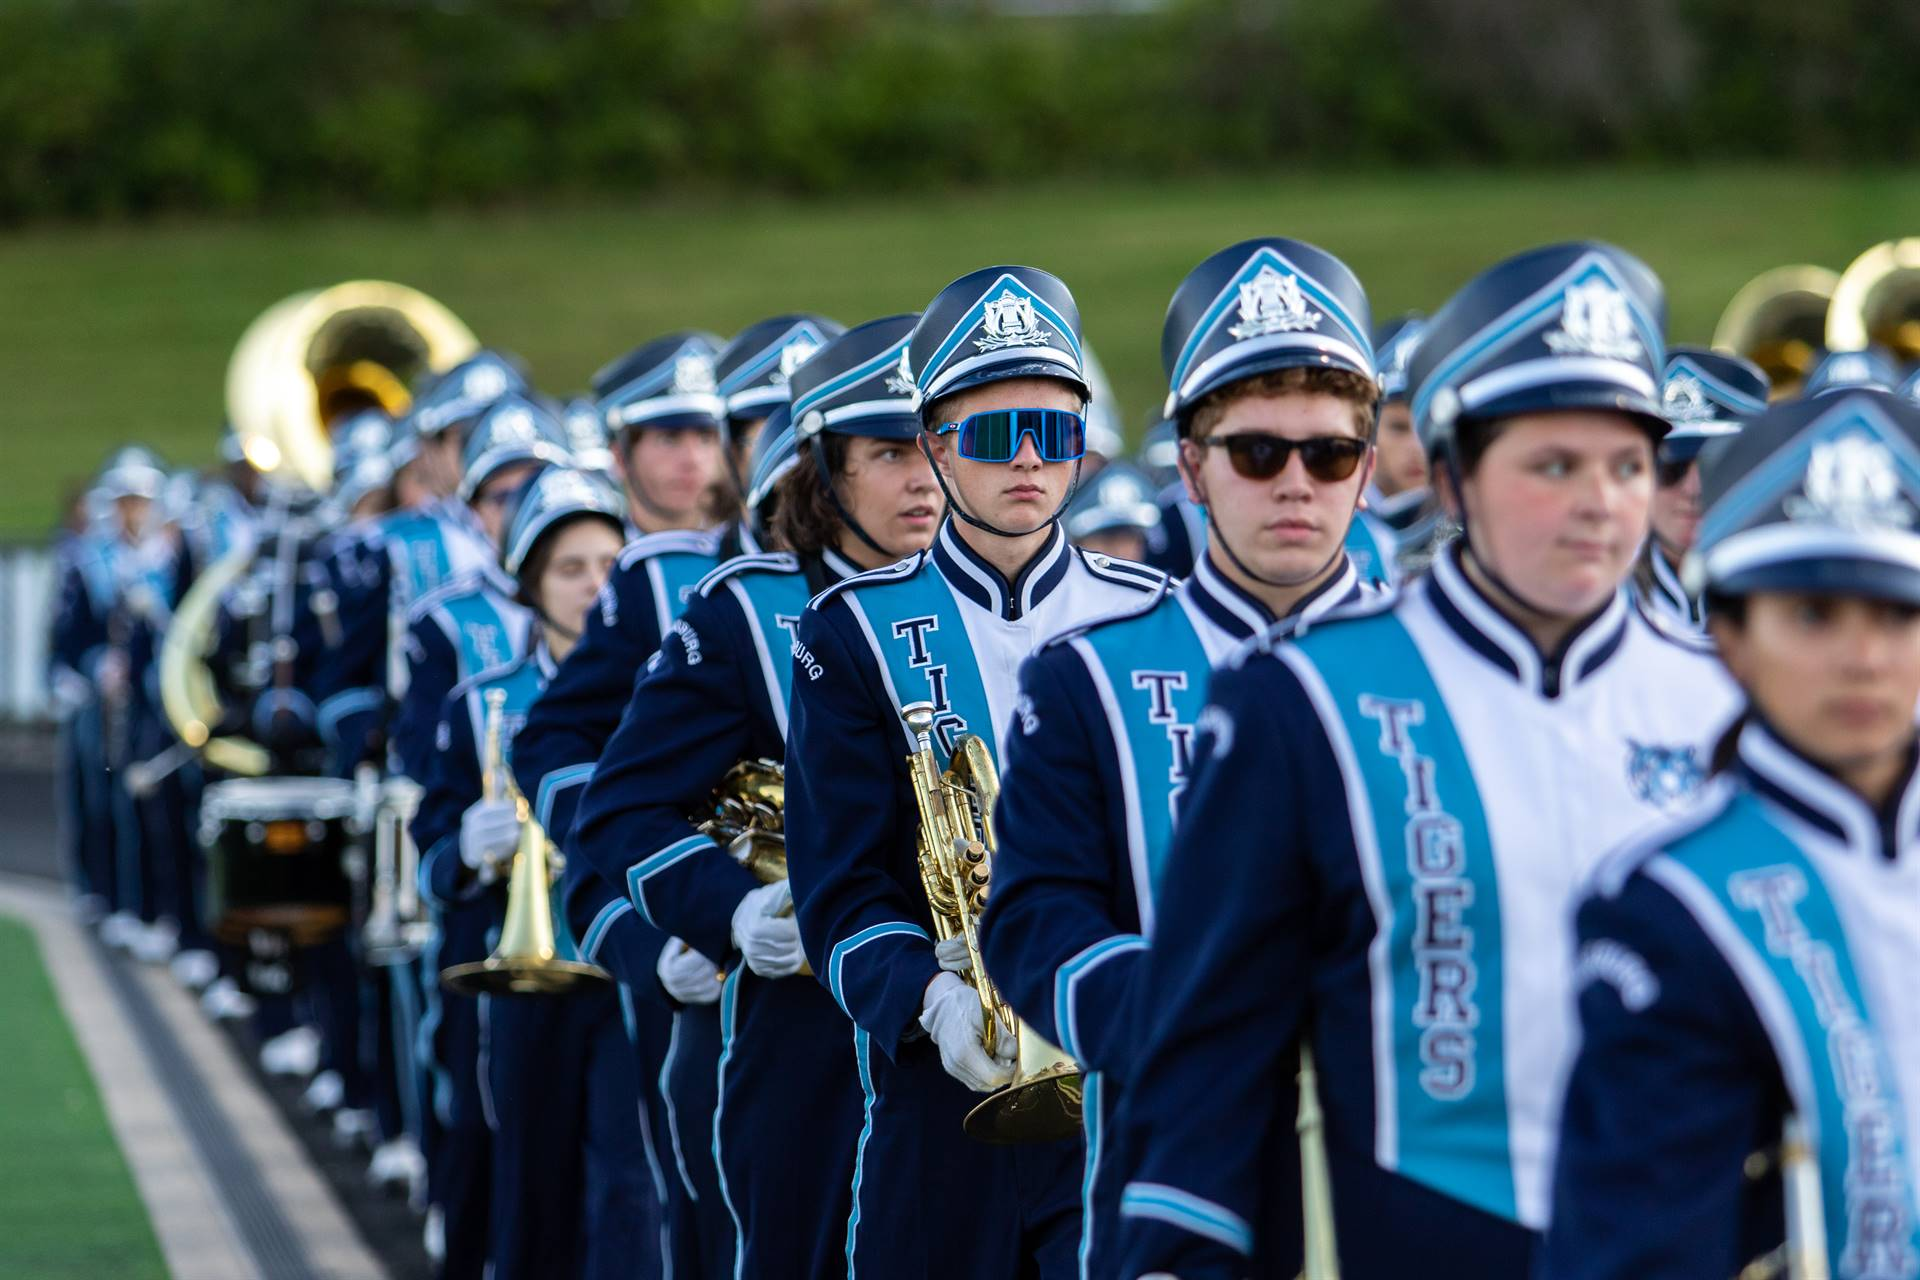 The Marching Band lined up and ready to perform.